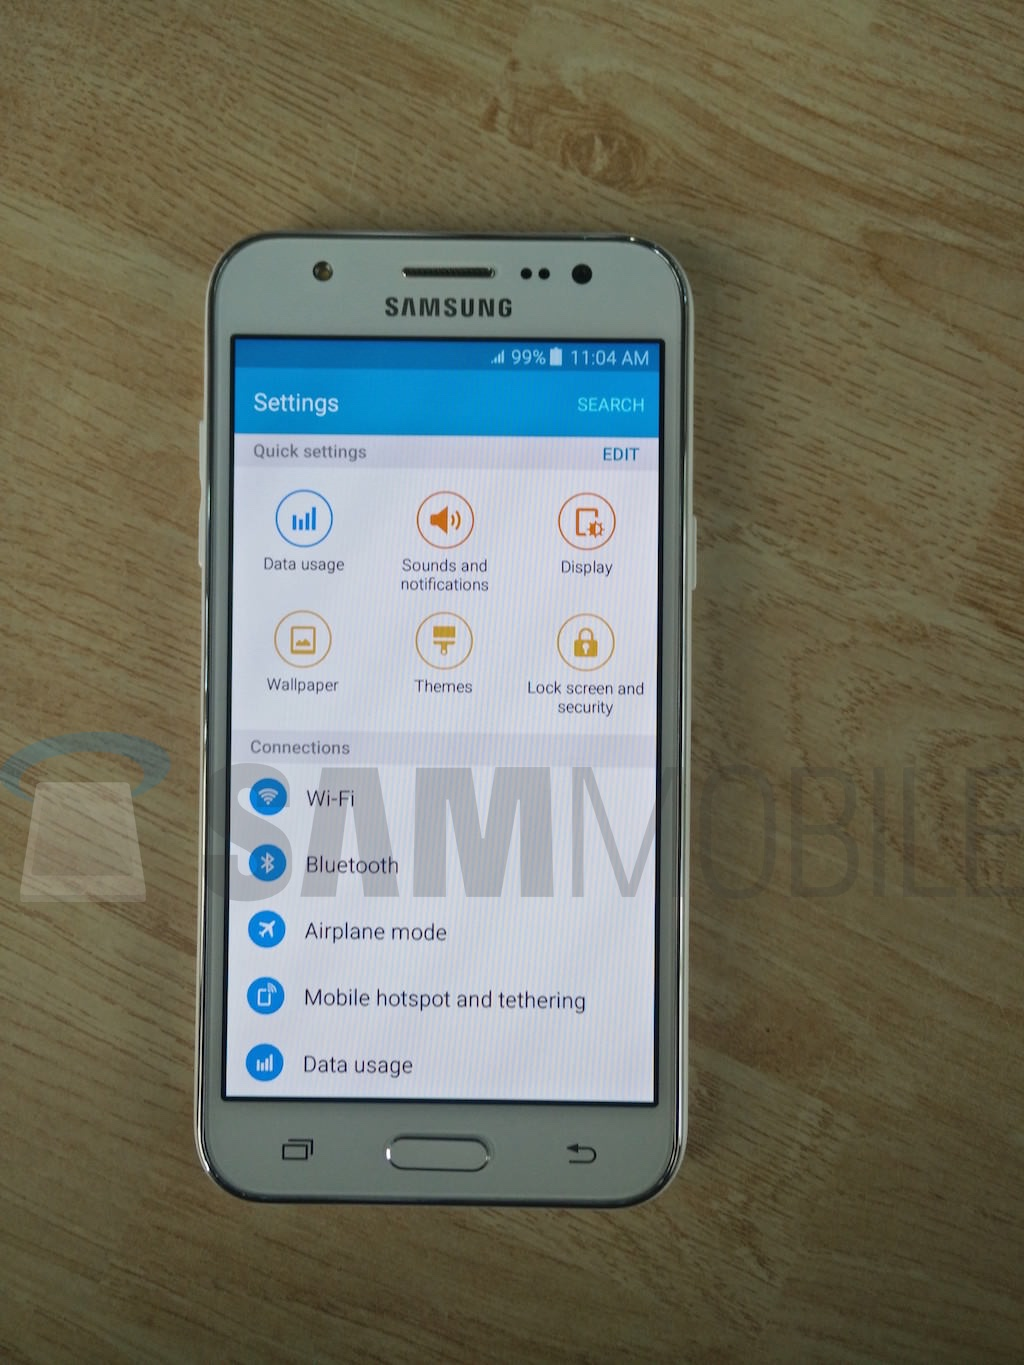 Exclusive Samsung Galaxy J5 Live Images And Specifications Sammobile Sammobile